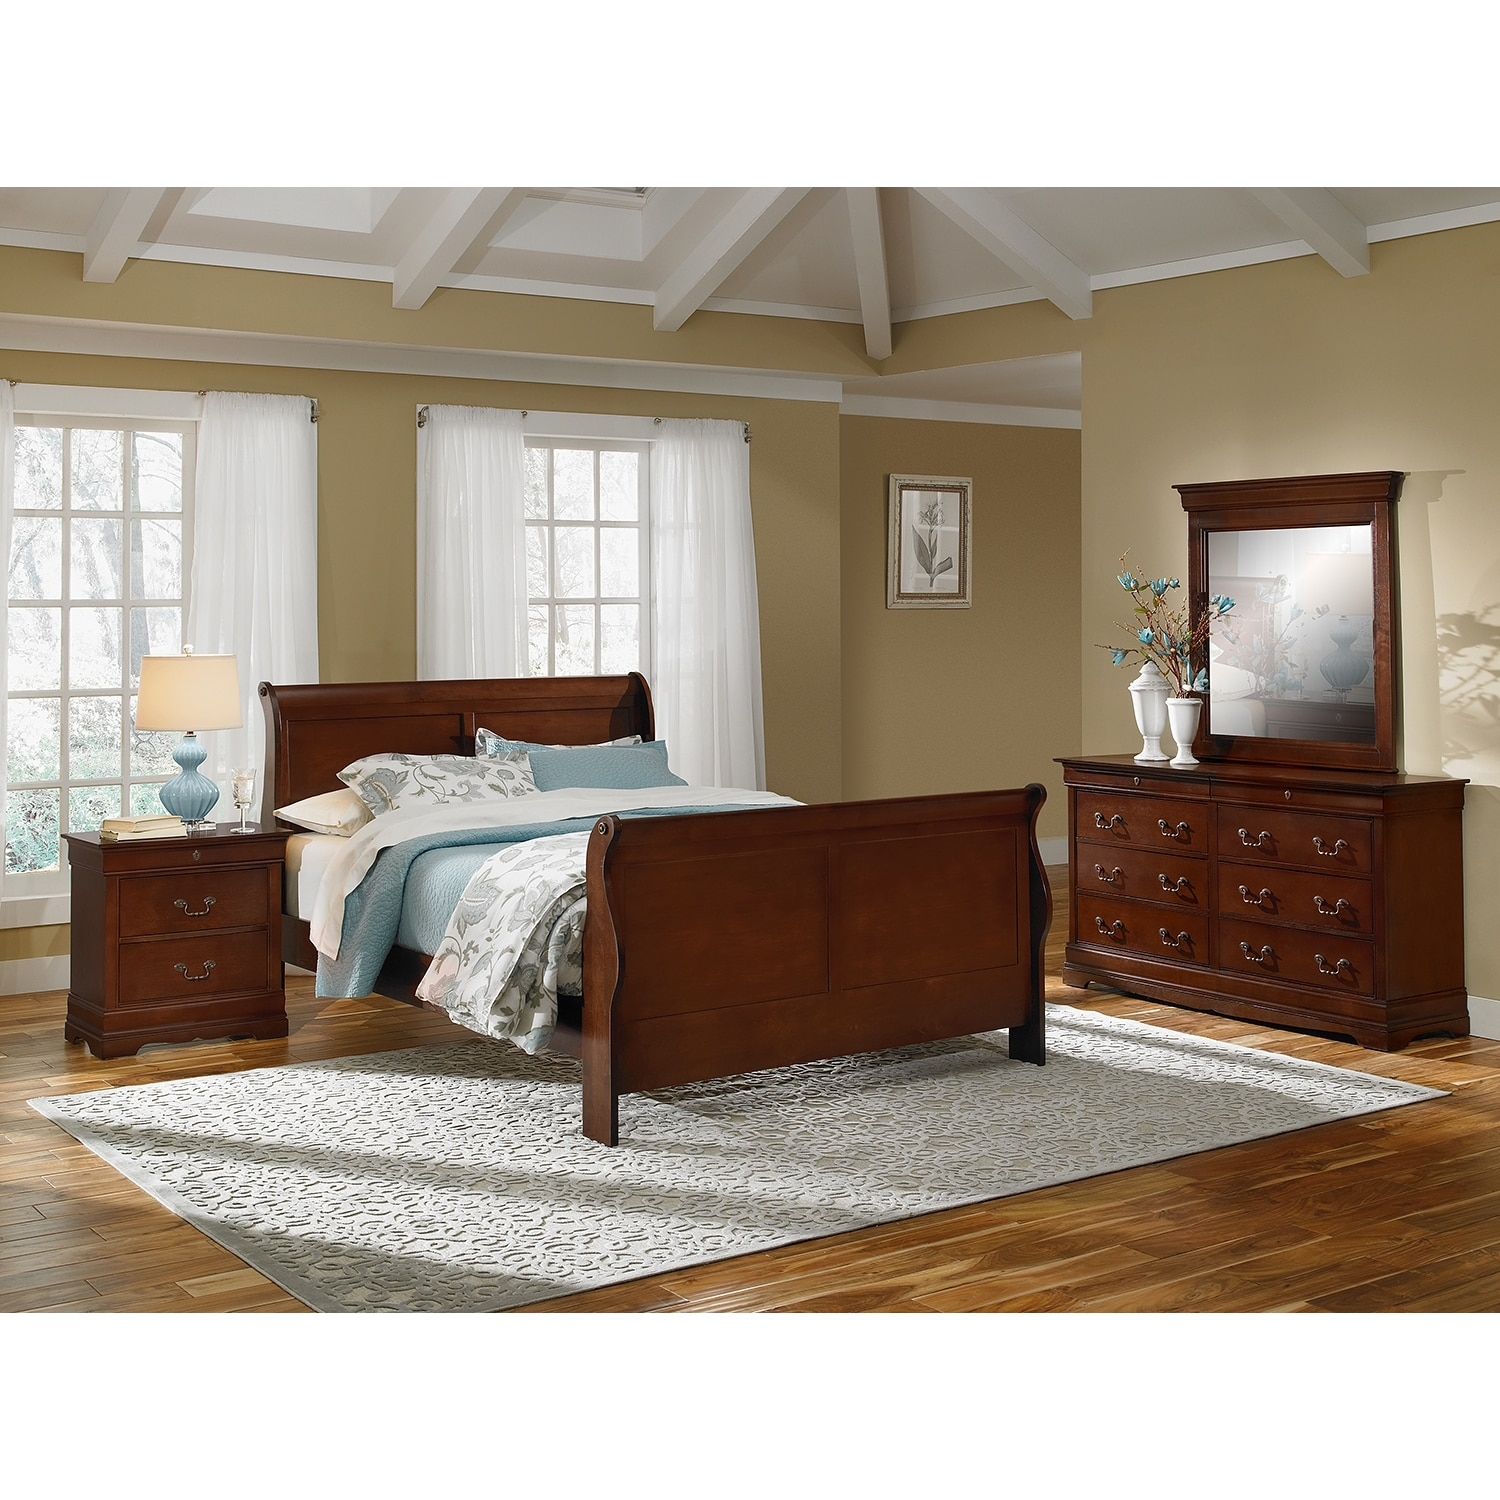 Bedroom Furniture - Neo Classic 6-Piece Queen Bedroom Set - Cherry